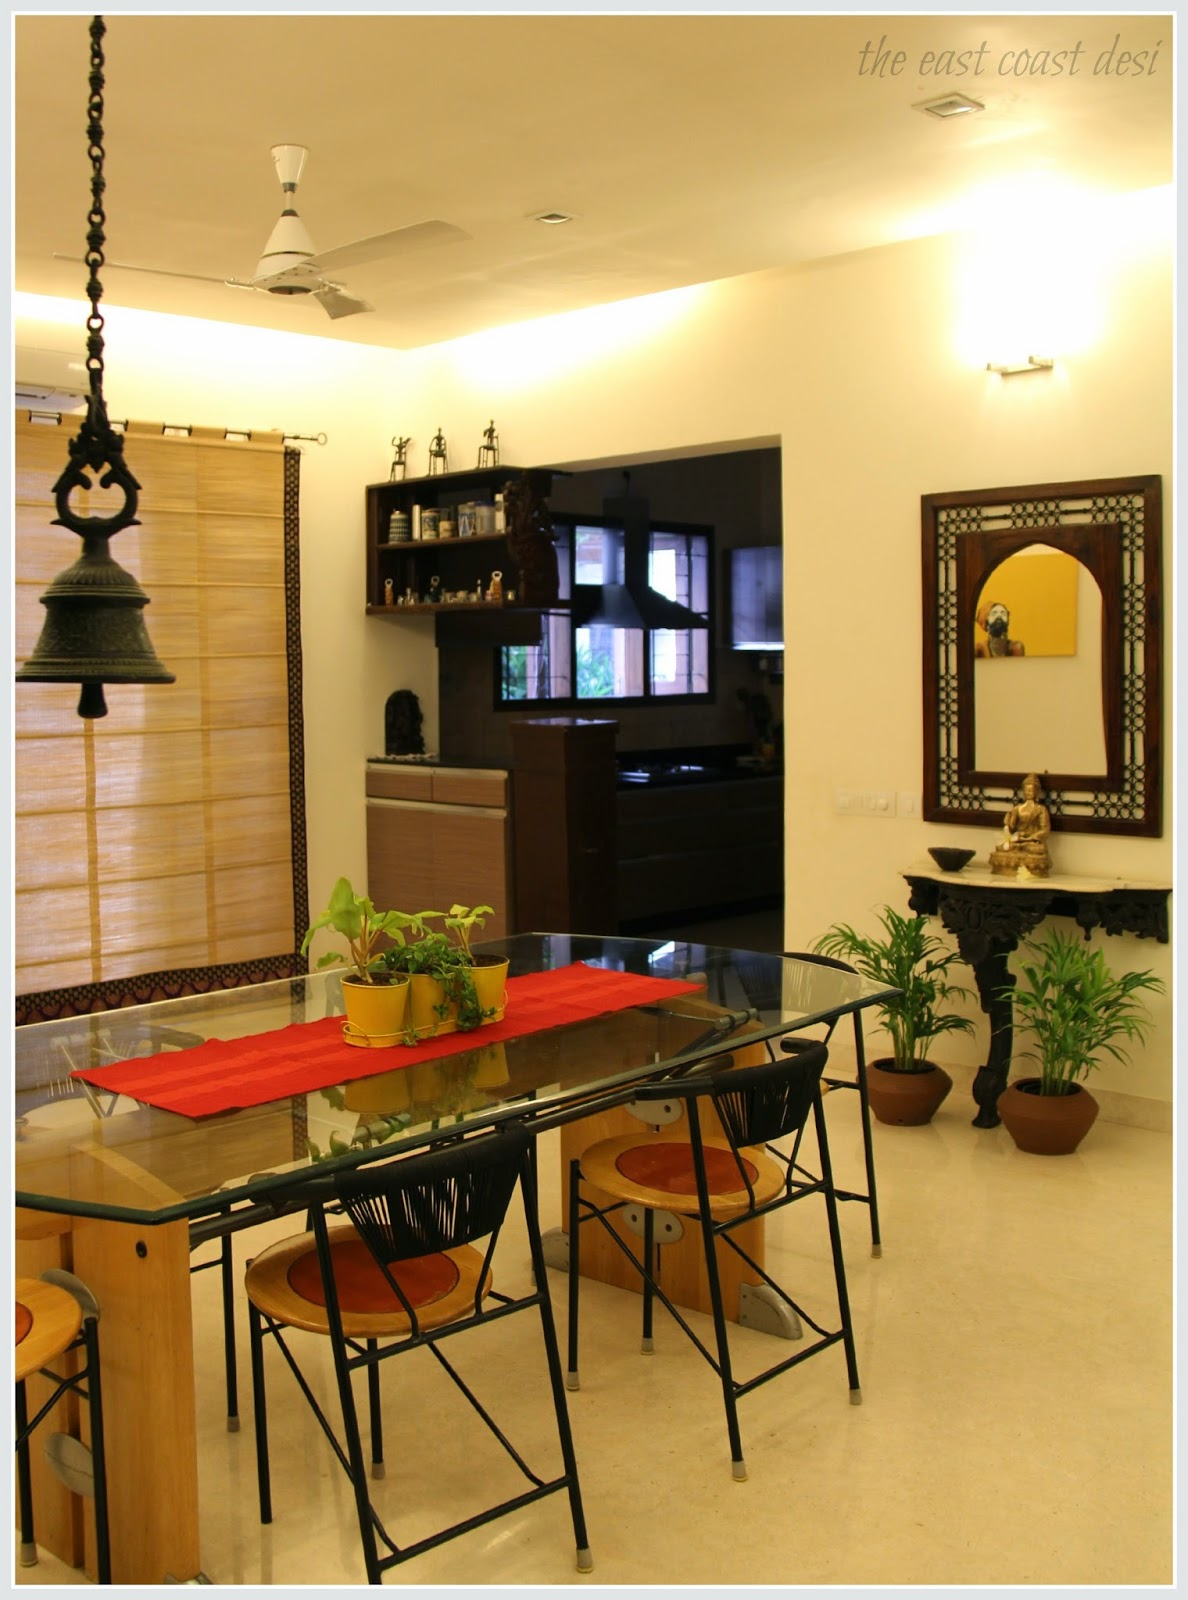 The east coast desi masterful mixing home tour for Dining room designs indian style